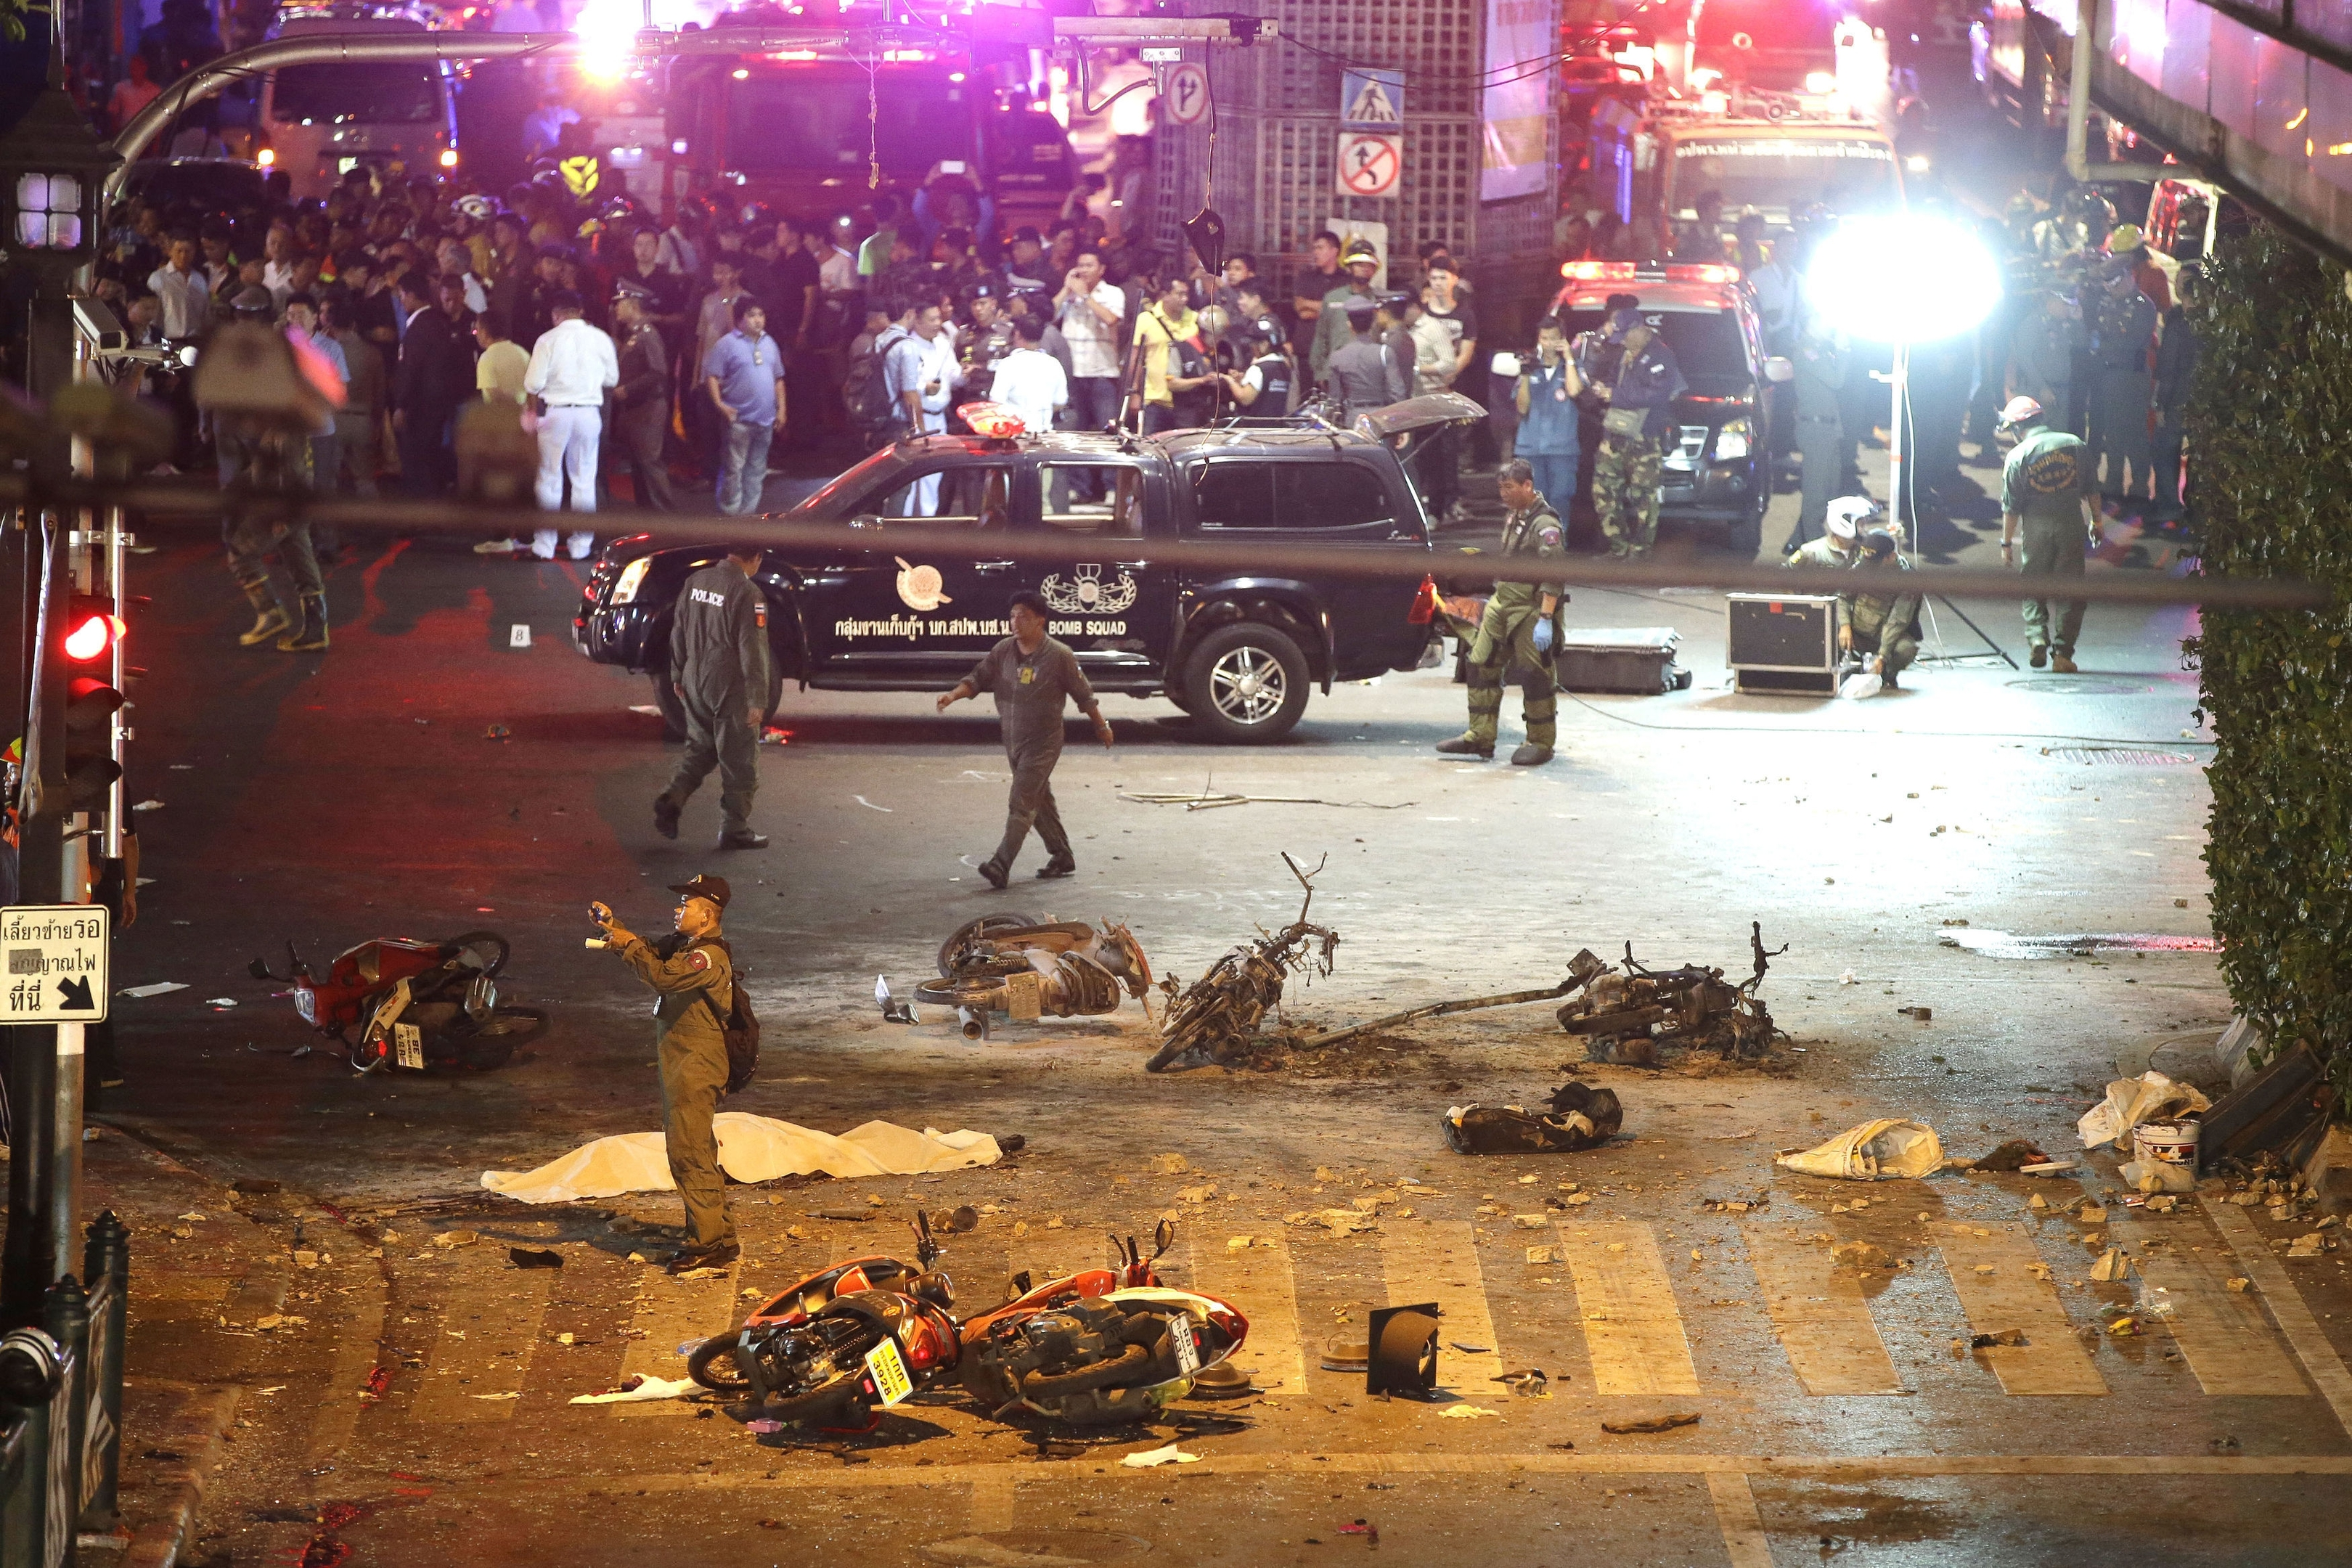 A policeman photographs debris from the explosion in central Bangkok